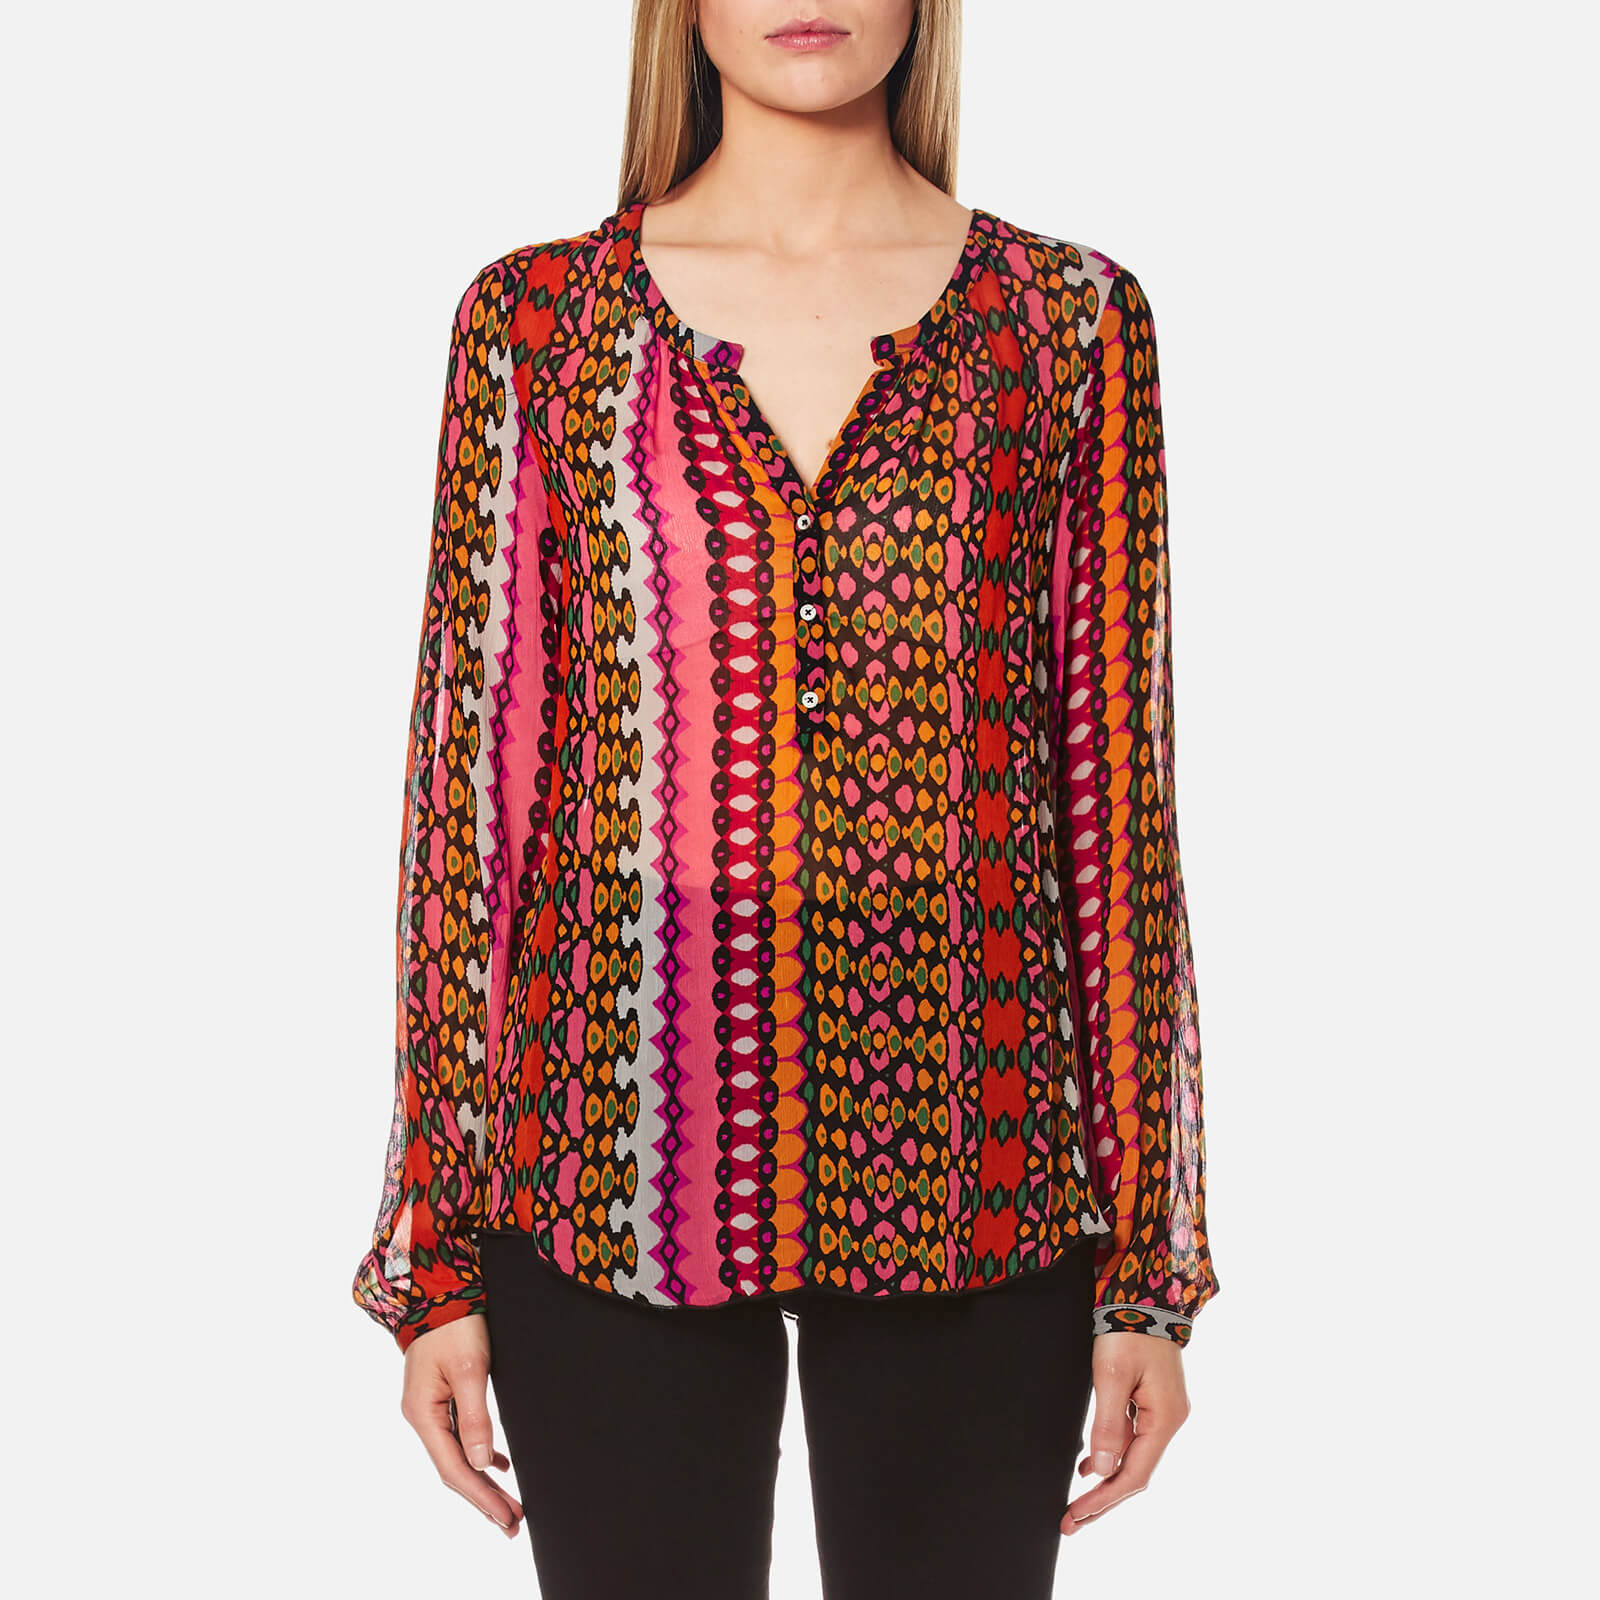 742877faa93 Maison Scotch Women's Sheer Tunic Top - Multi - Free UK Delivery over £50